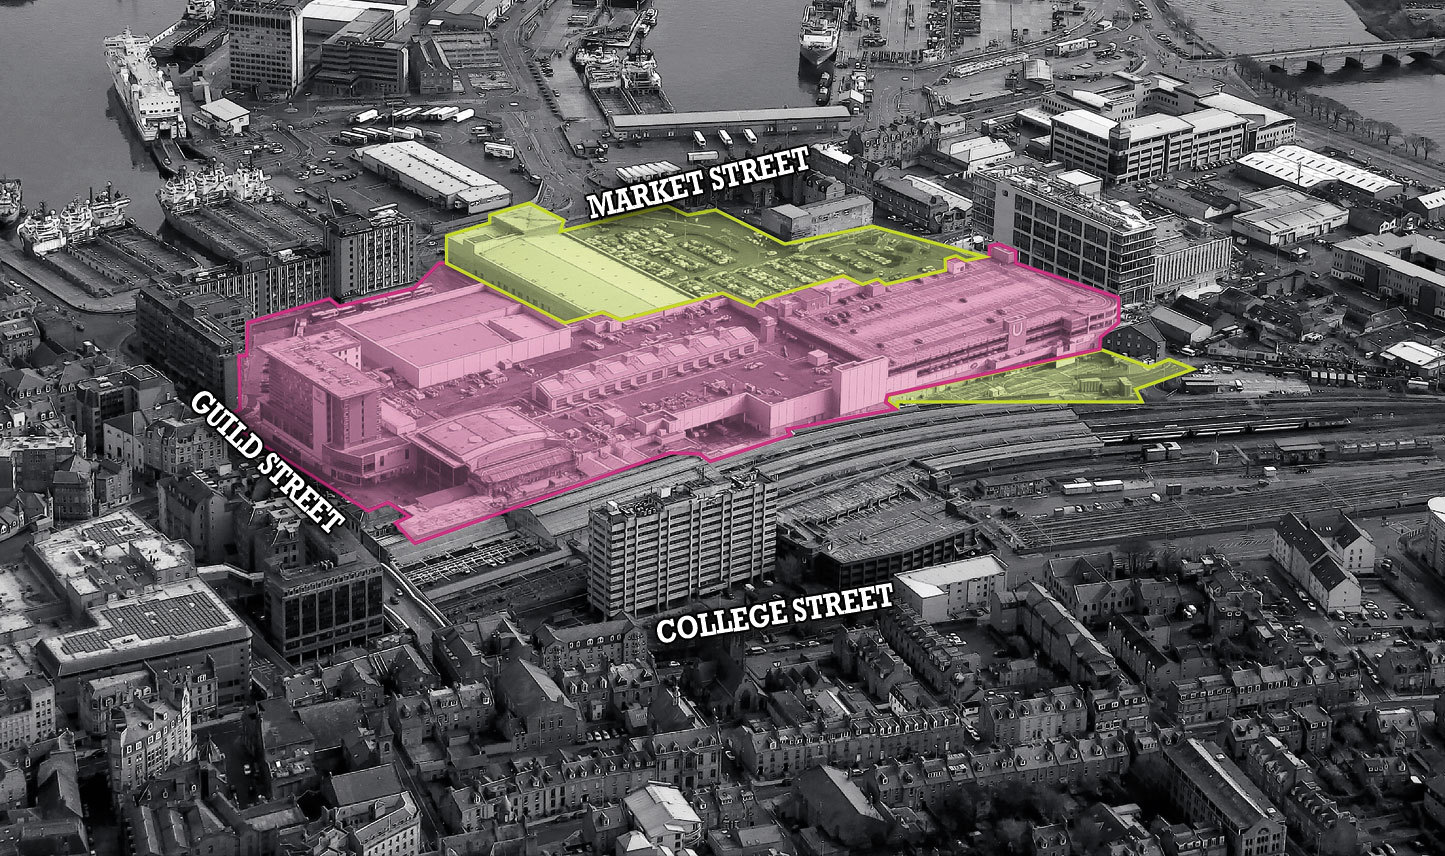 An indicative drawing of the areas which the existing Union Square would expand into